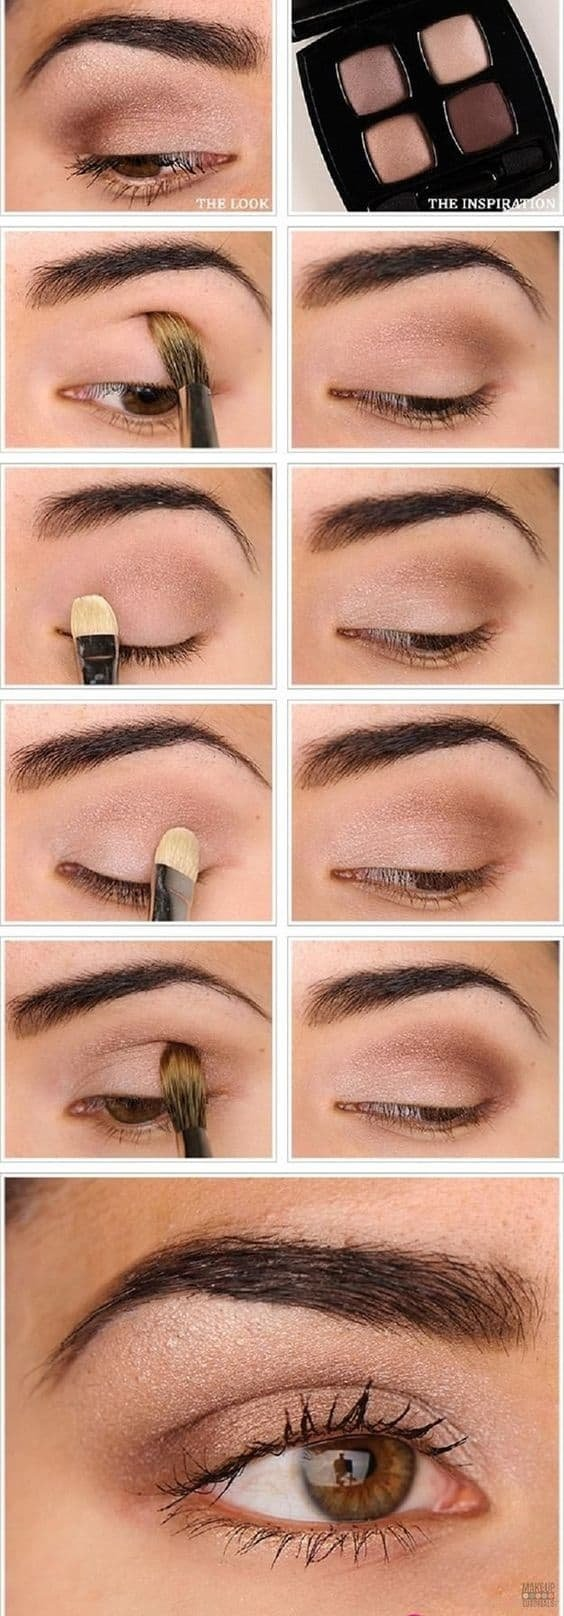 10 Awesome Cute Makeup Ideas For Brown Eyes 10 makeup ideas for brown eyes ritely 2020